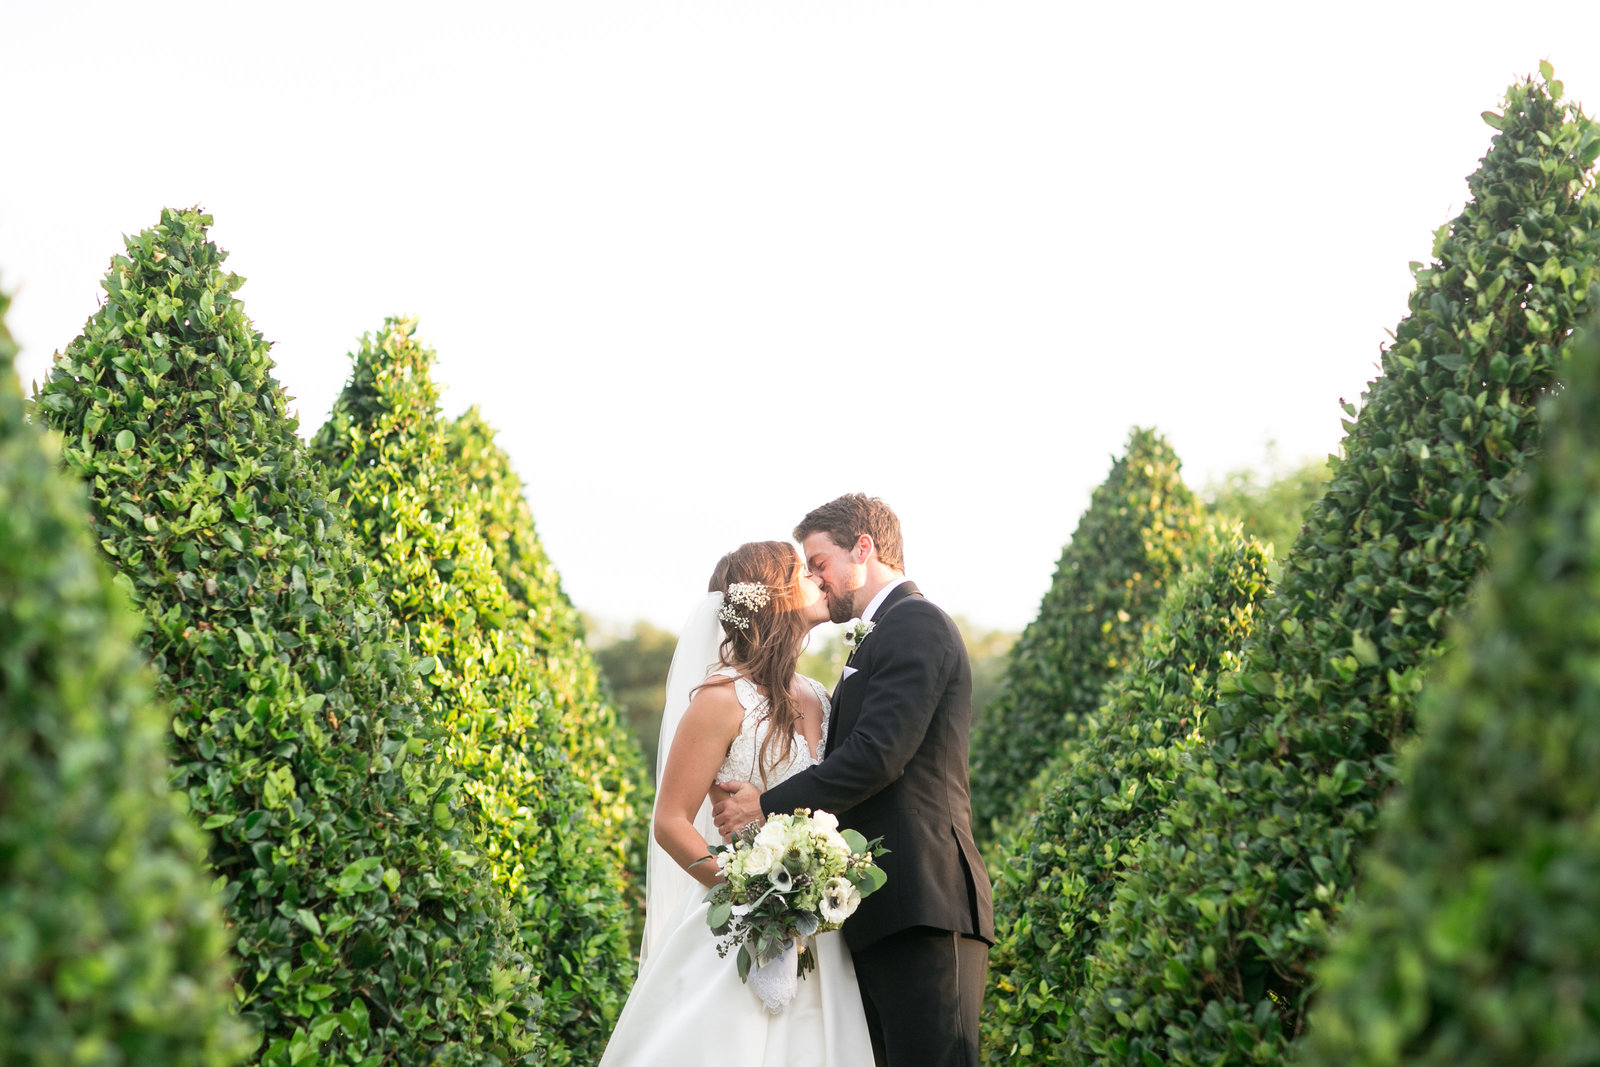 gardens-of-cranesbury-view-canyon-lake-texas-wedding-bride-and-groom-photo-71